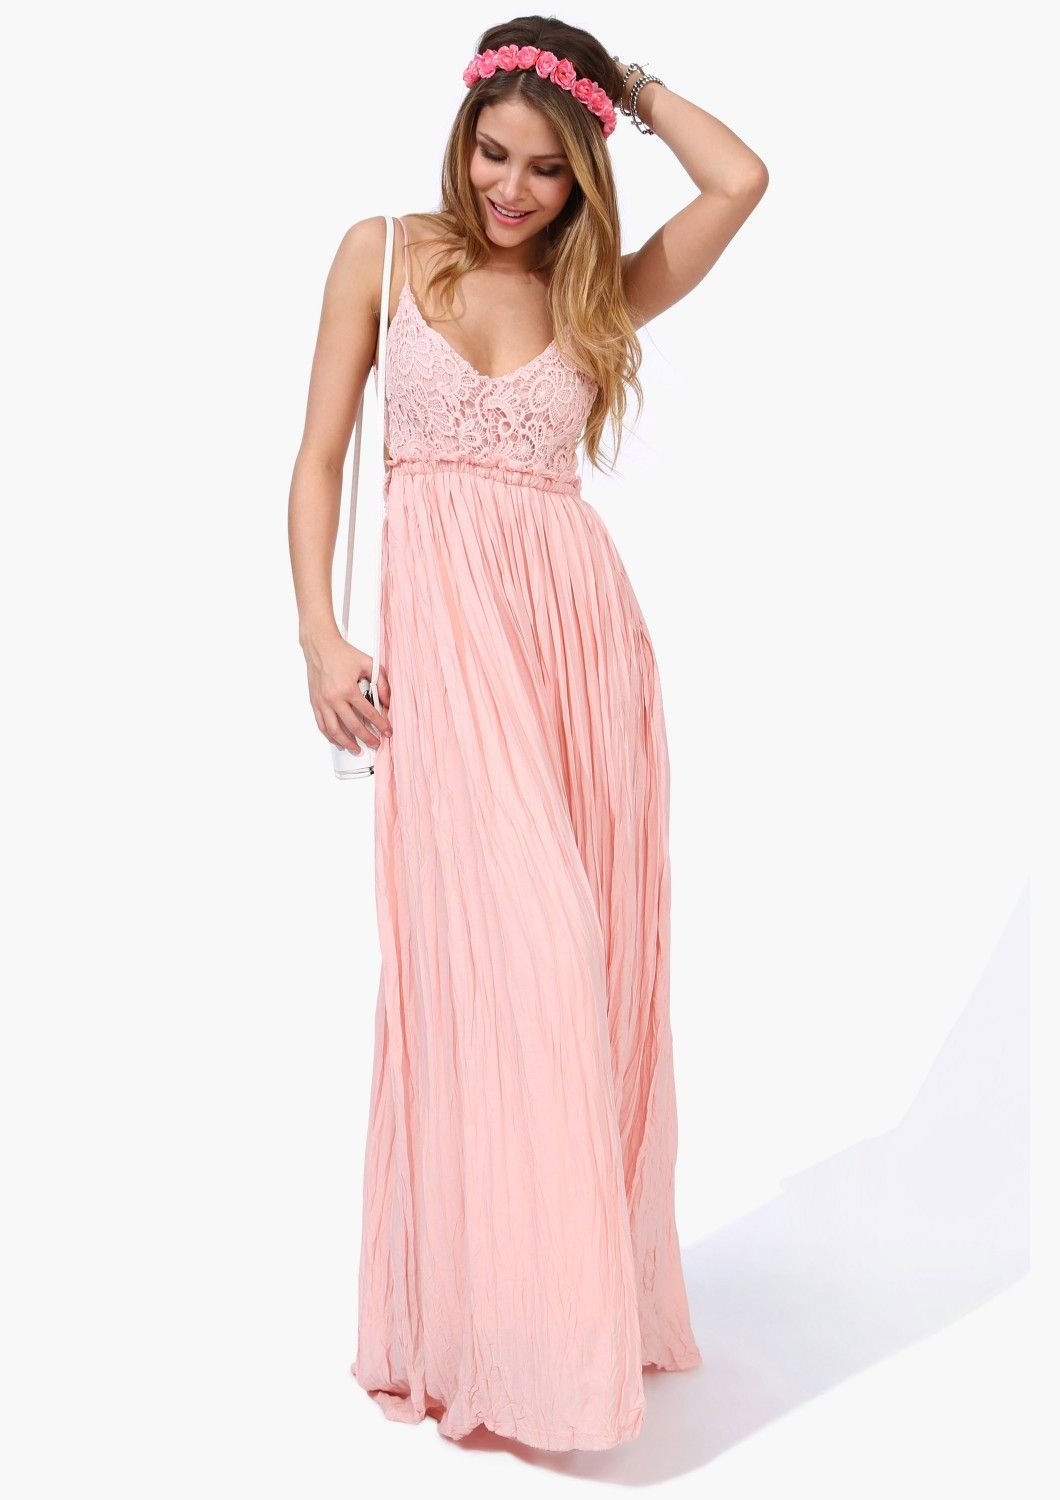 Sway Maxi Dress | wd | Pinterest | Boda, Vestidos maxi y Playas